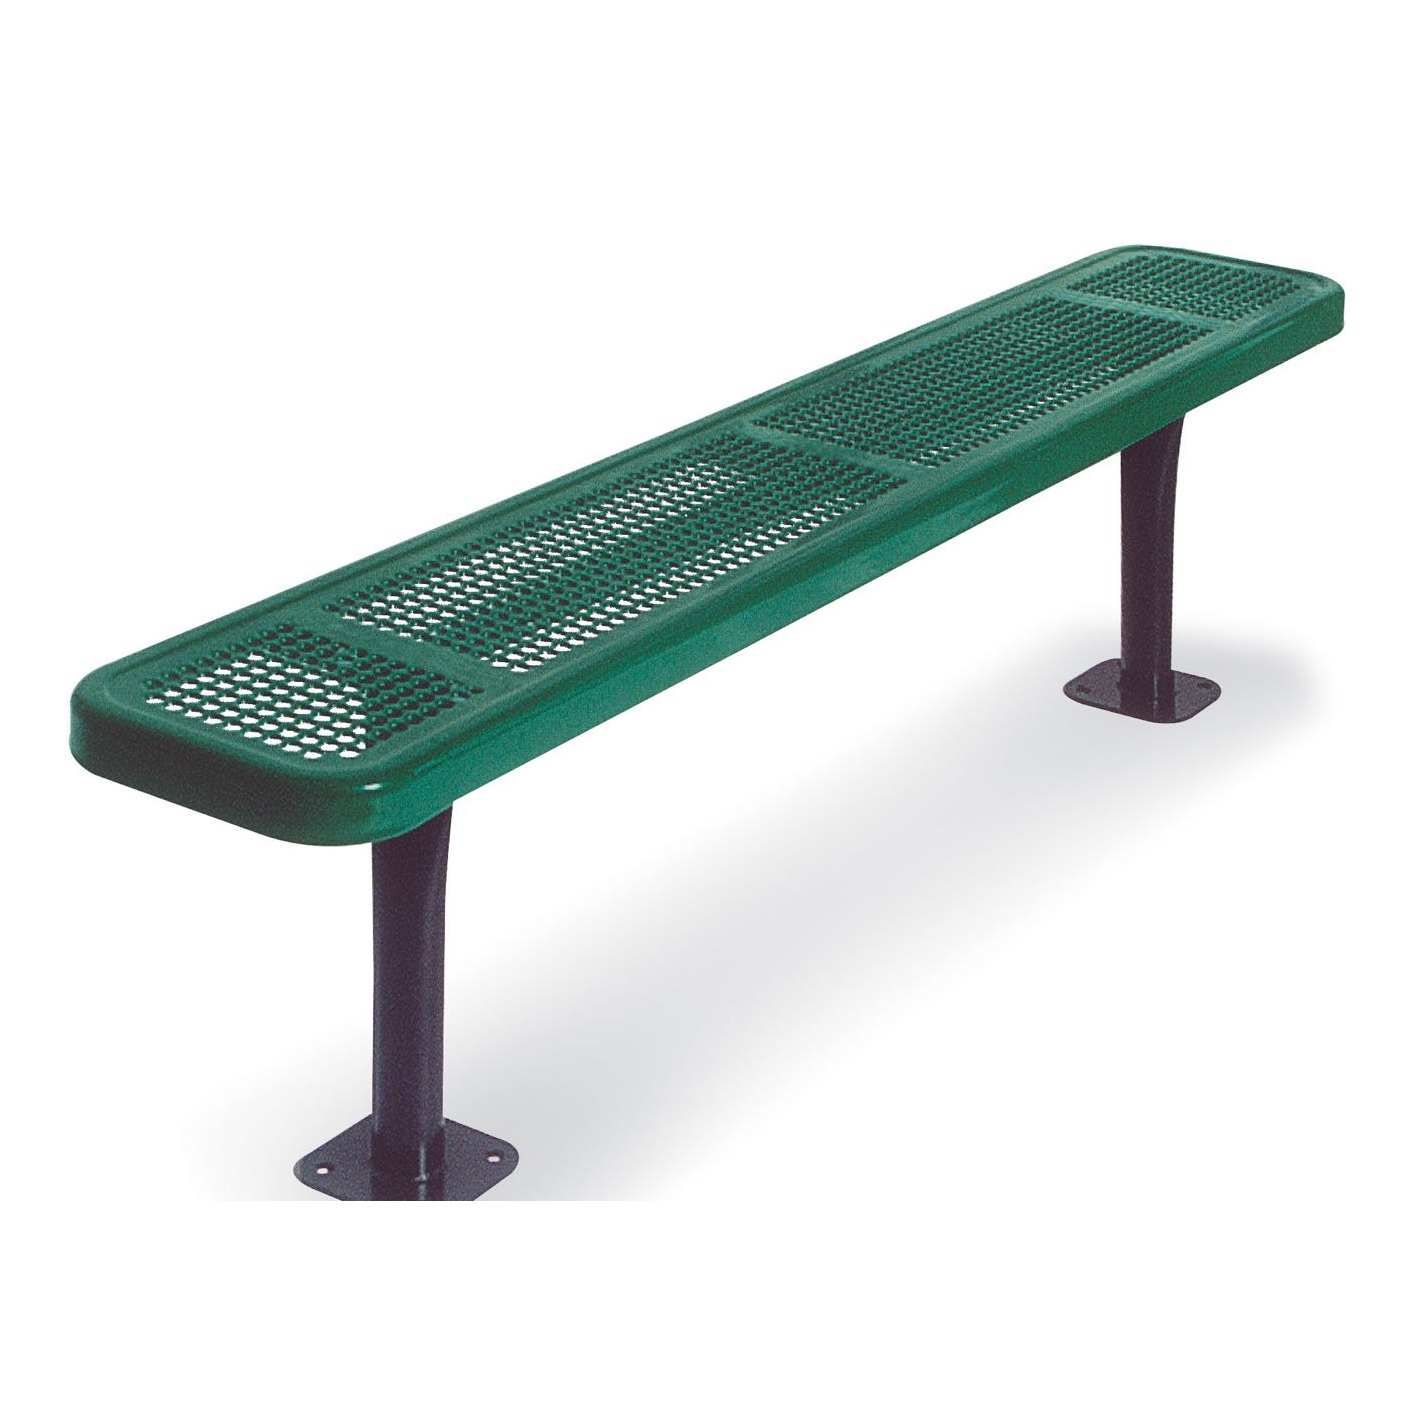 ship quick inground rhino portable expanded mount thermoplastic with metal back surface bench foot rectangular